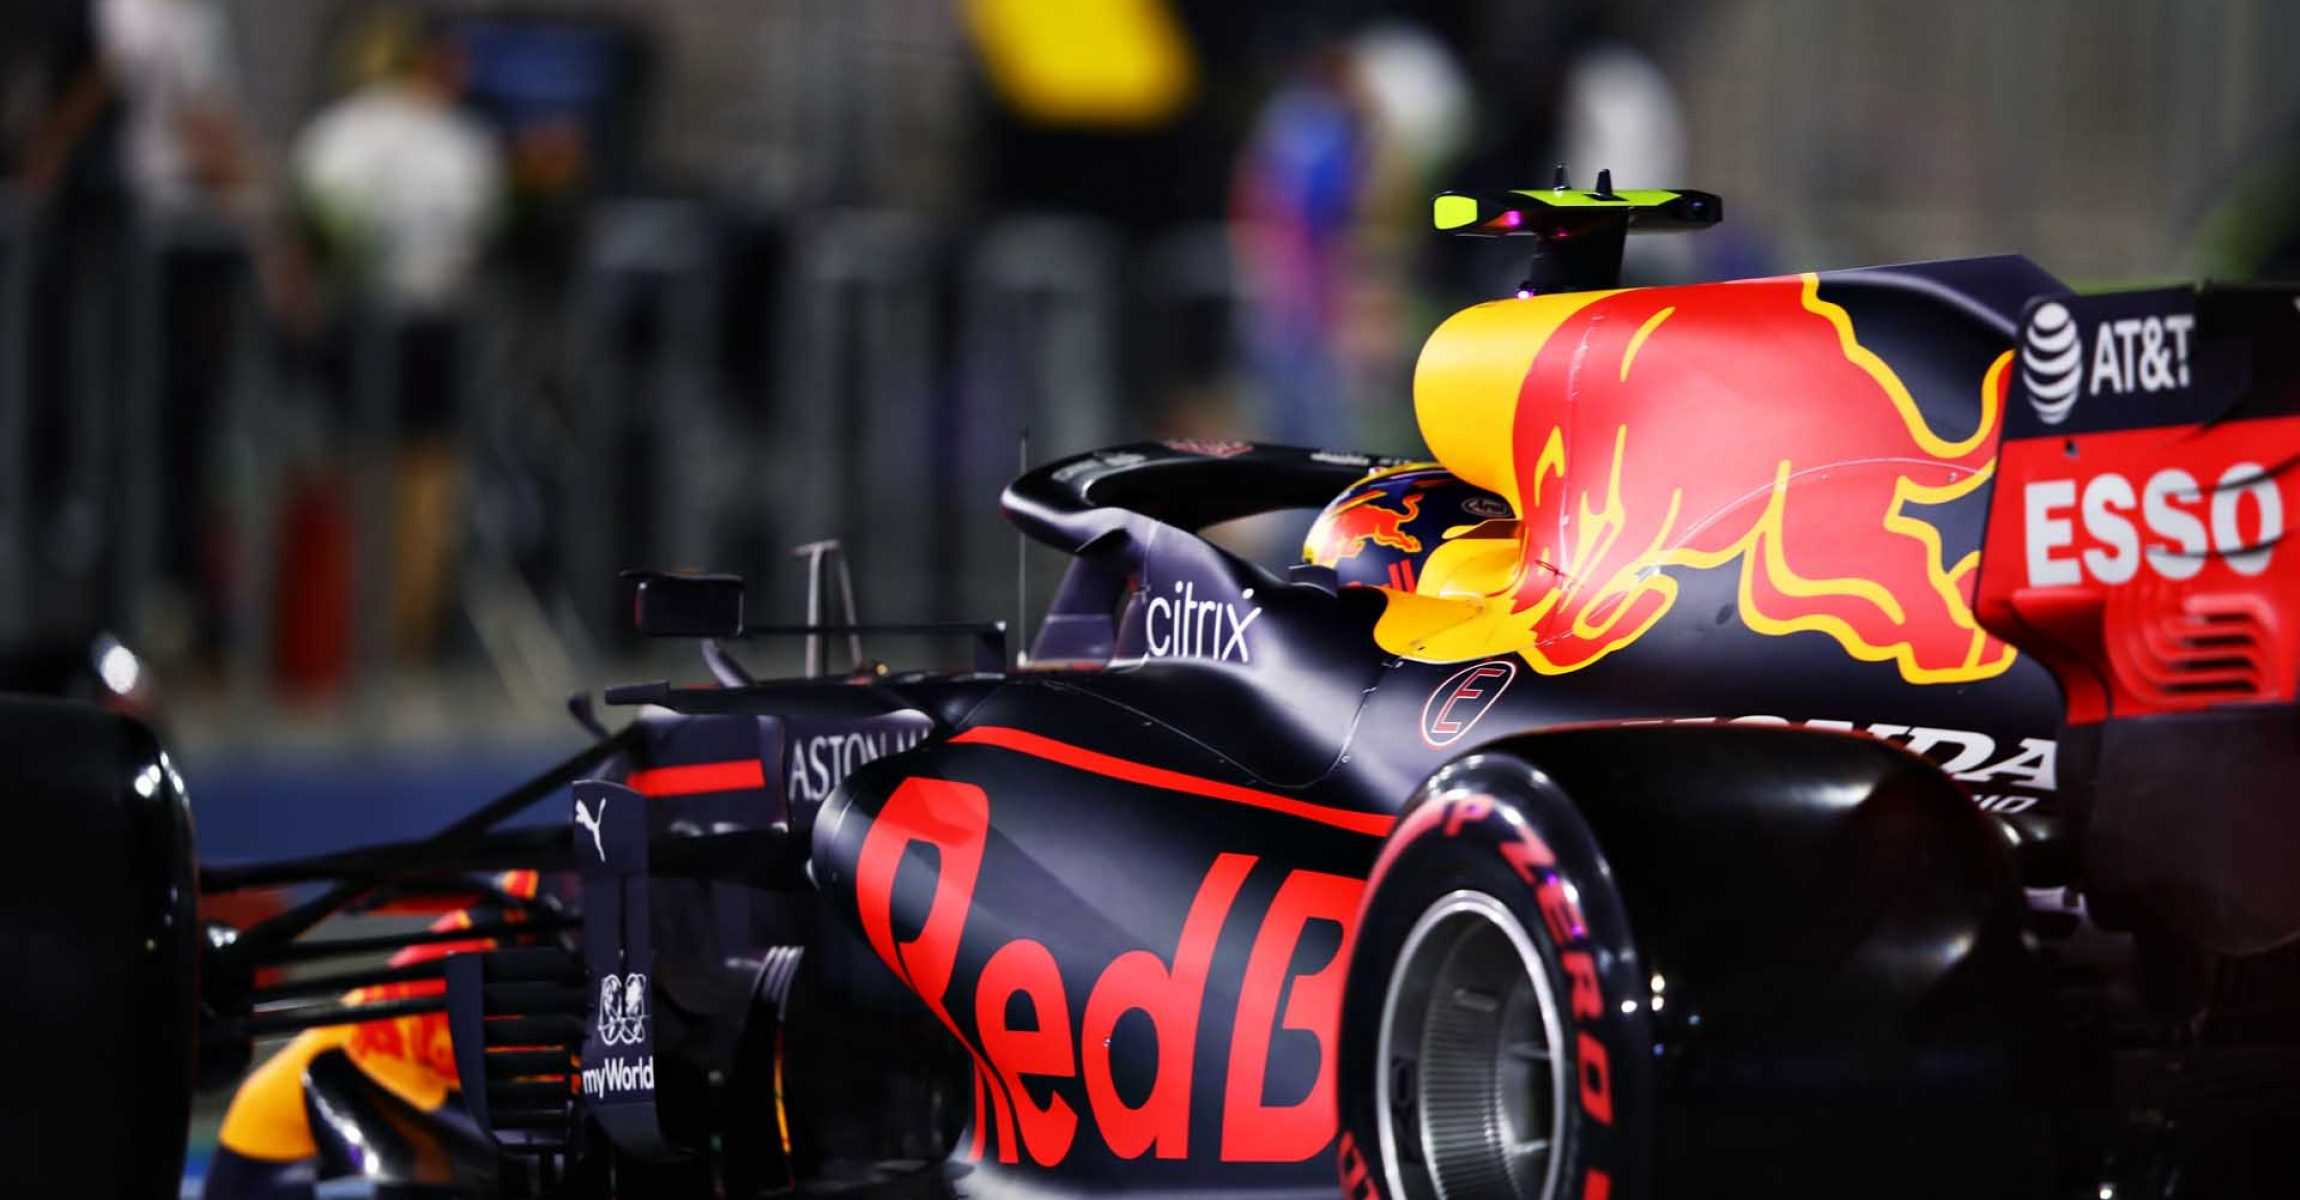 BAHRAIN, BAHRAIN - DECEMBER 05: Alexander Albon of Thailand driving the (23) Aston Martin Red Bull Racing RB16 leaves the garage during qualifying ahead of the F1 Grand Prix of Sakhir at Bahrain International Circuit on December 05, 2020 in Bahrain, Bahrain. (Photo by Mark Thompson/Getty Images)